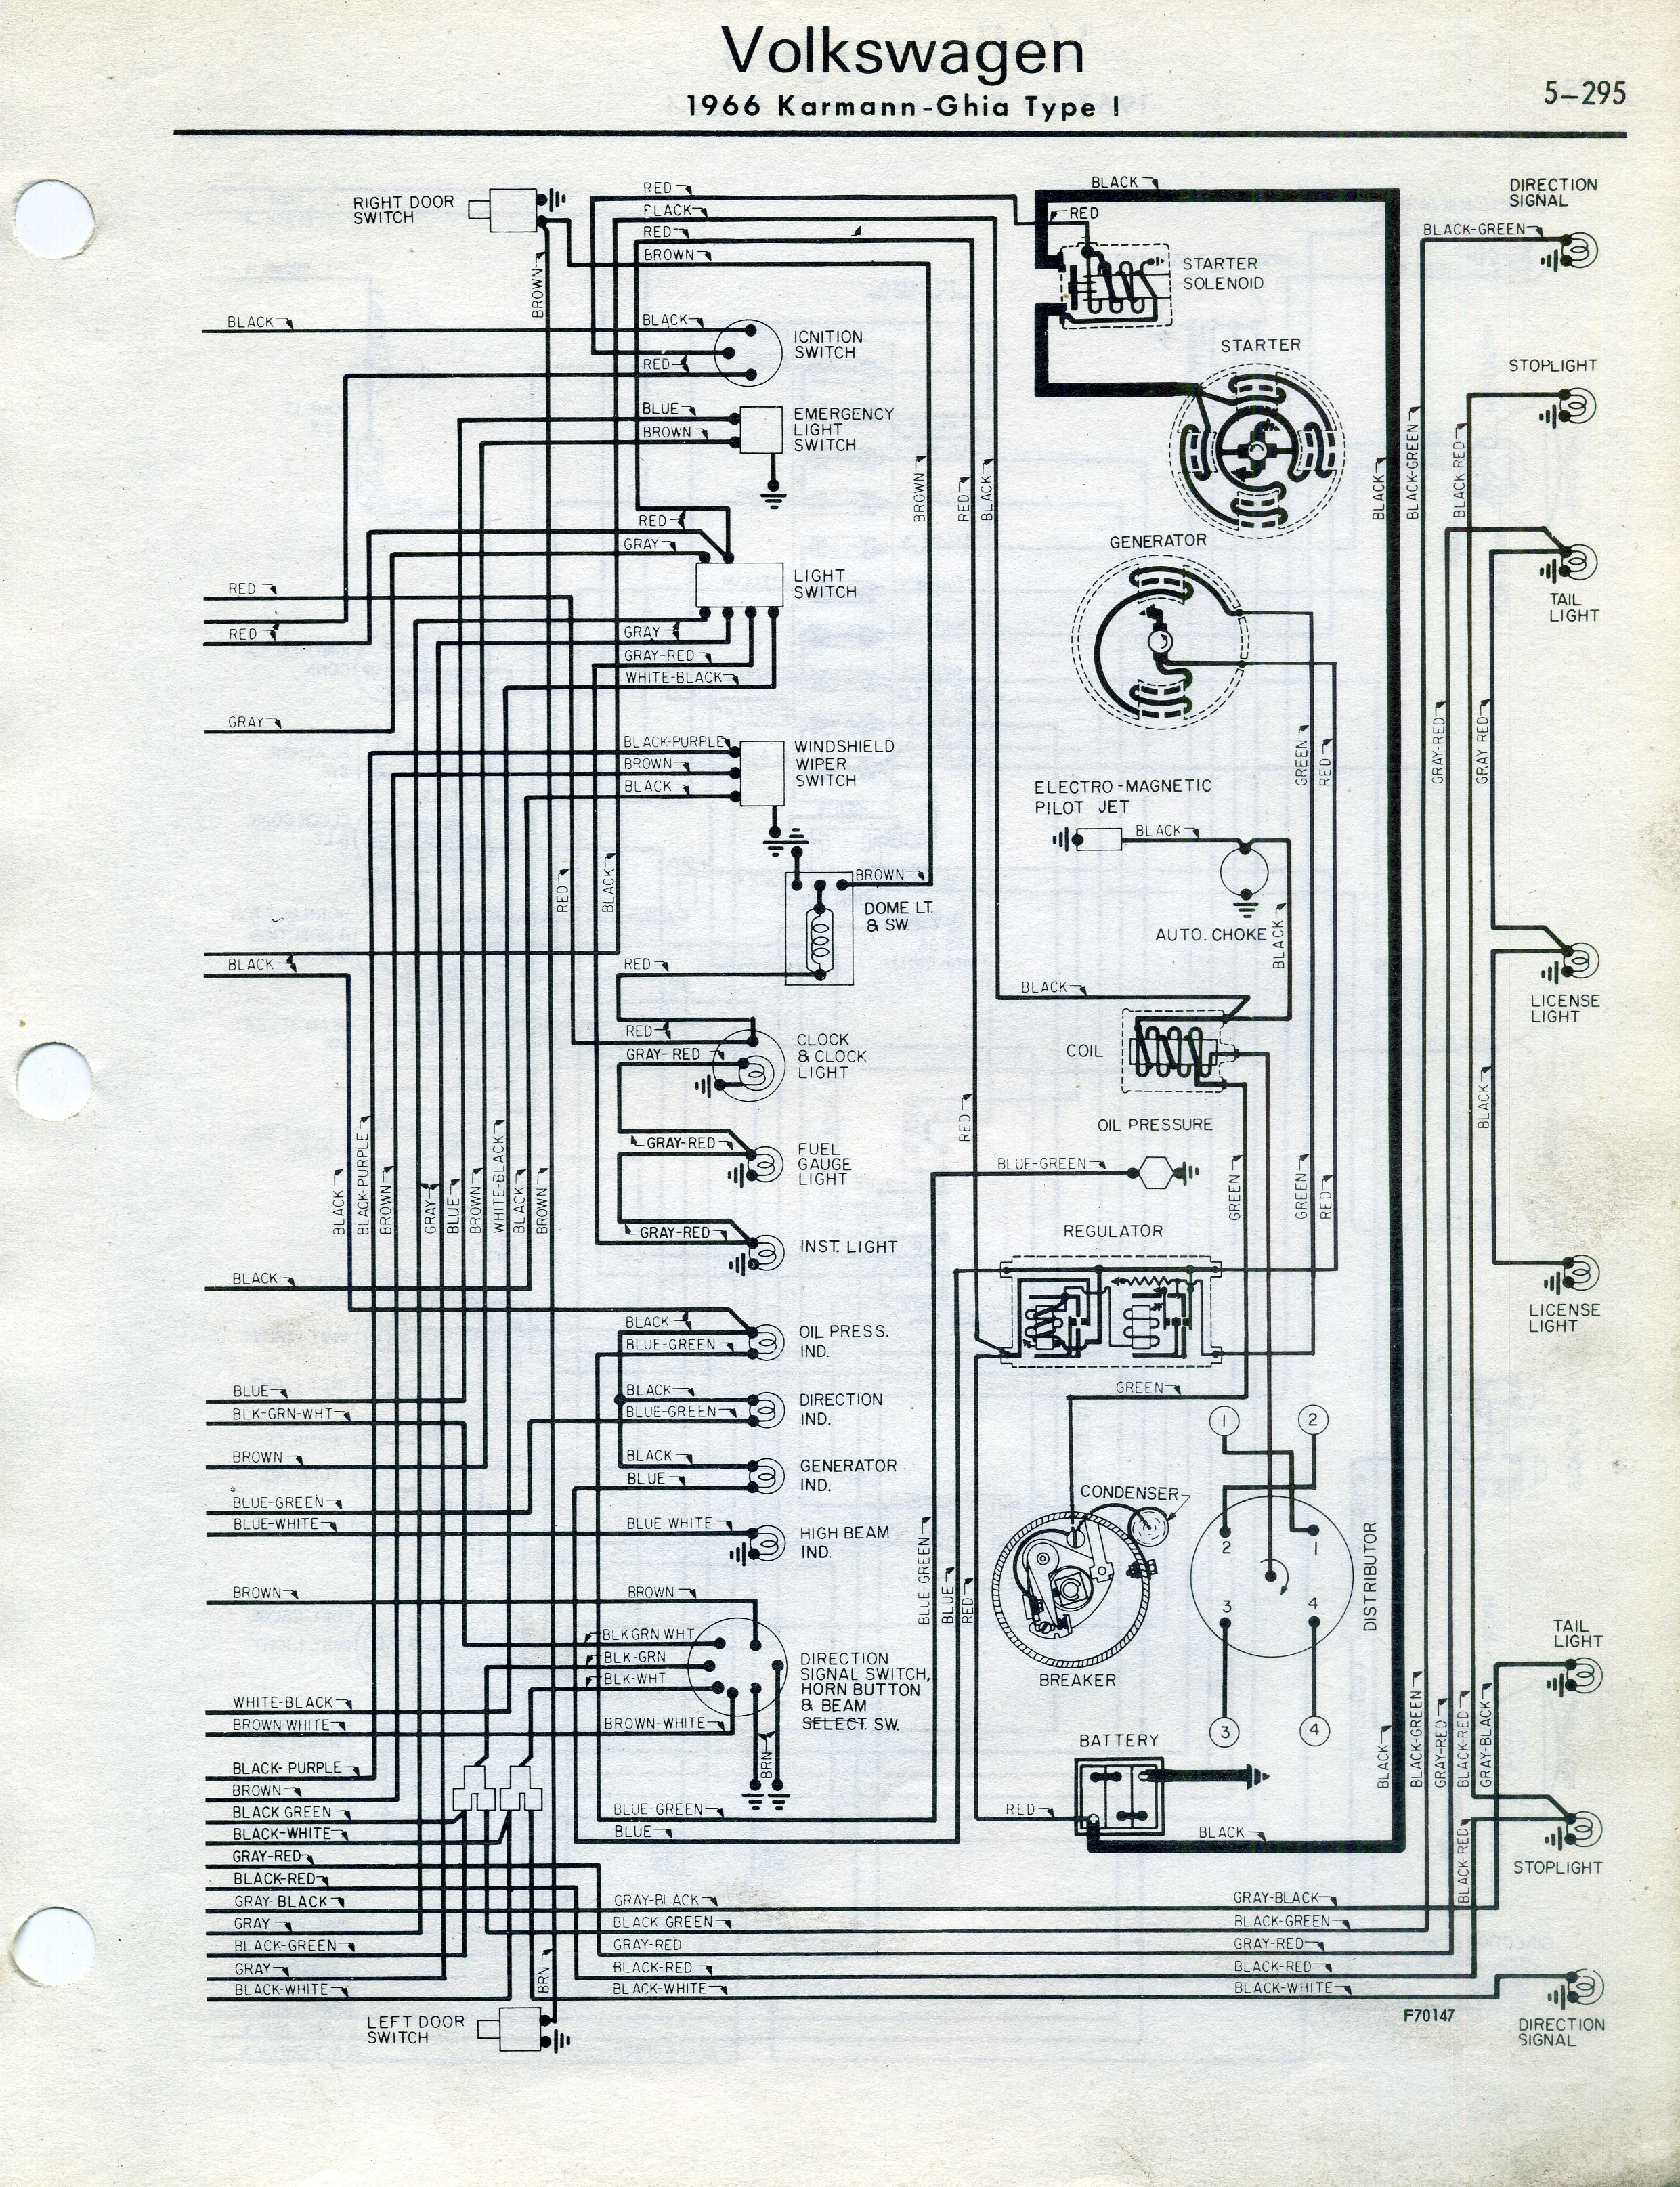 22re igniter wiring diagram dog vital organs karmann ghia ignition switch imageresizertool com